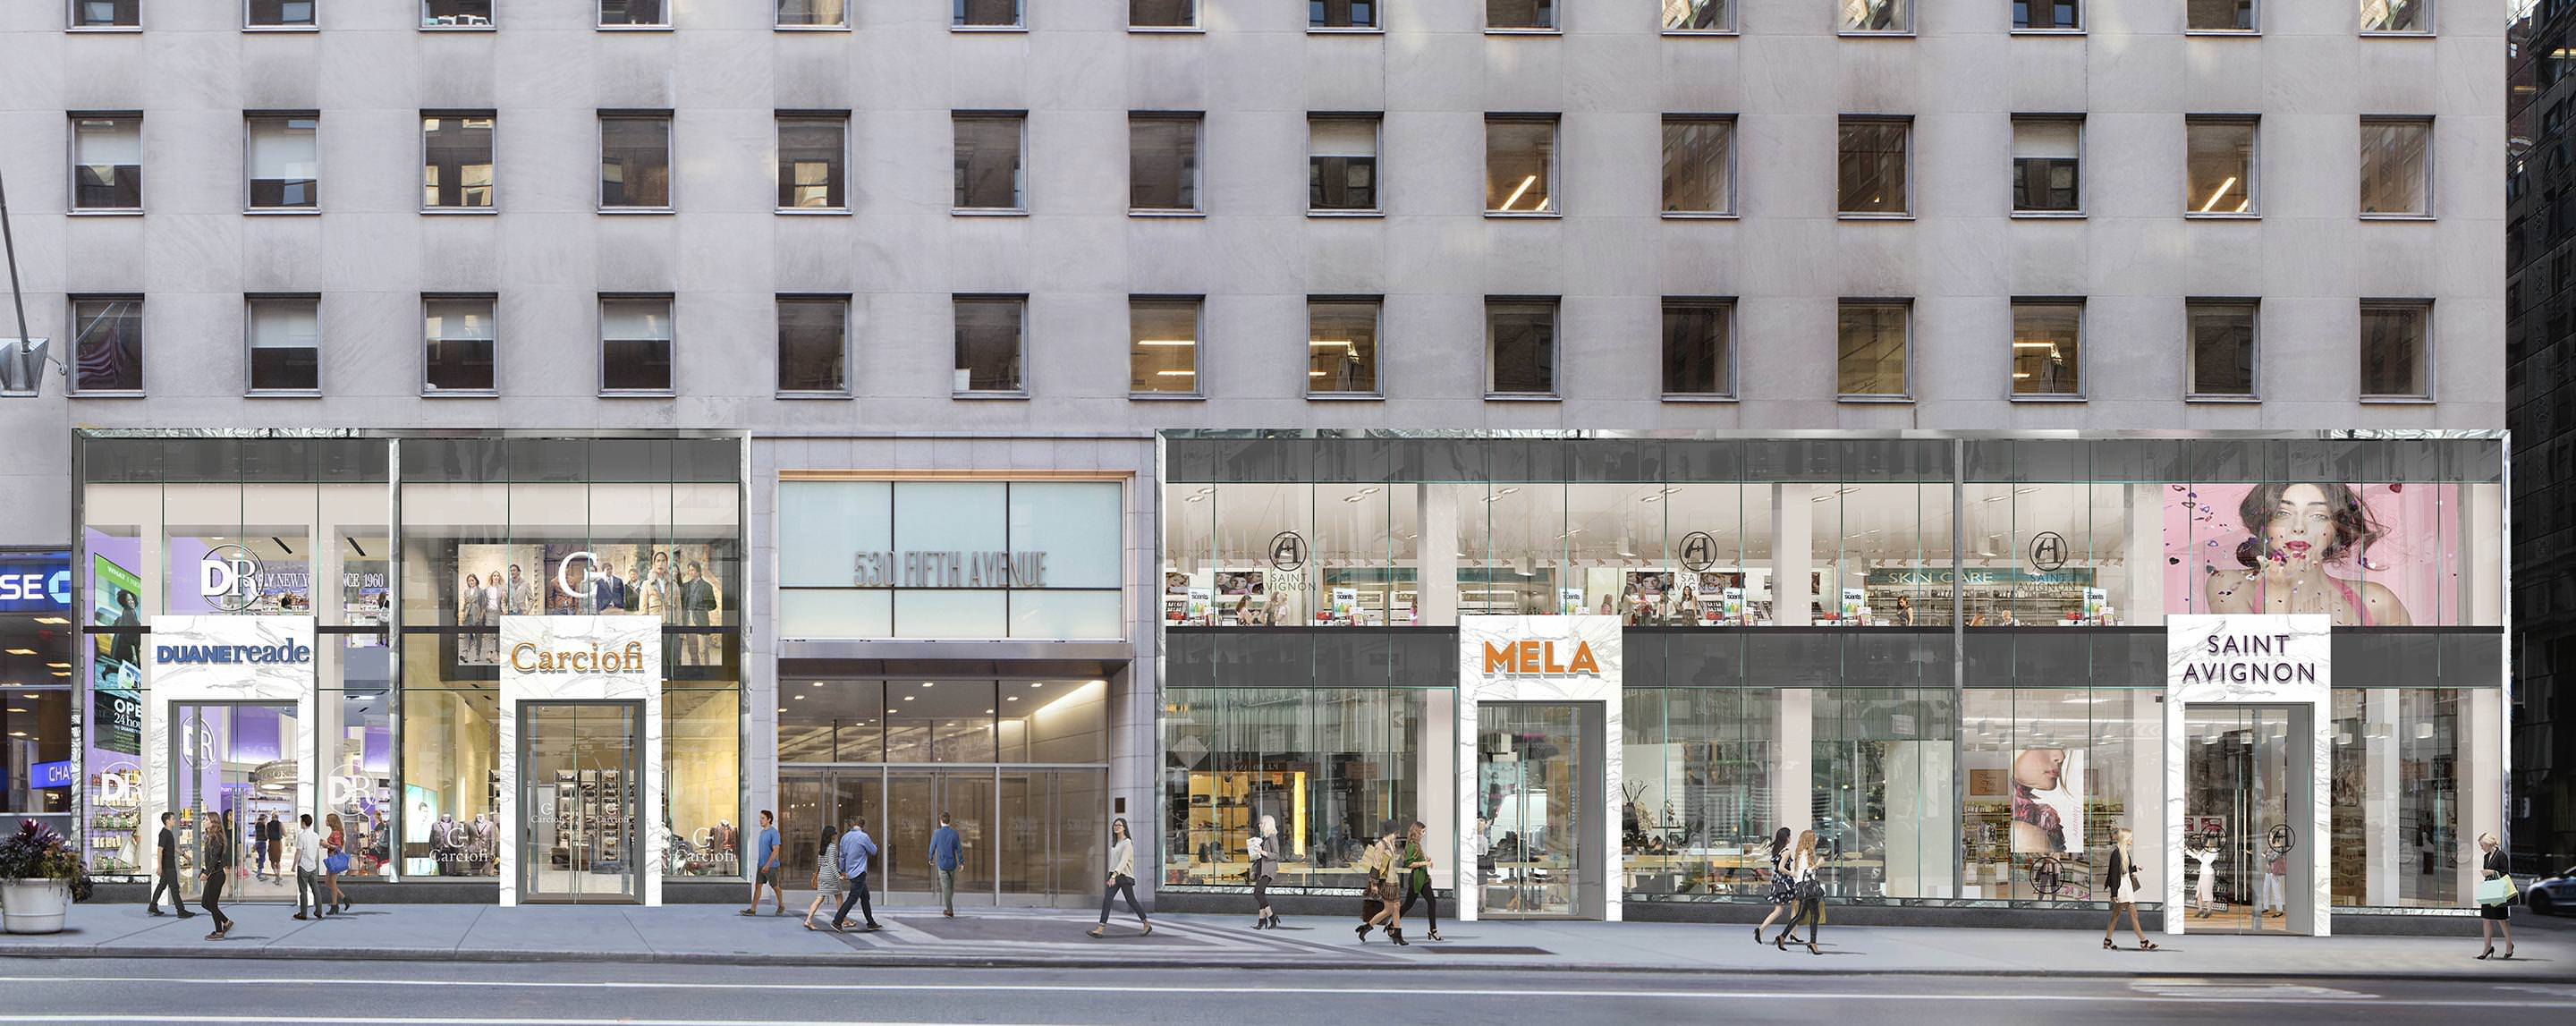 The 530 Fifth Avenue property attracts people on the street with the store fronts including Mela and Carciofi.